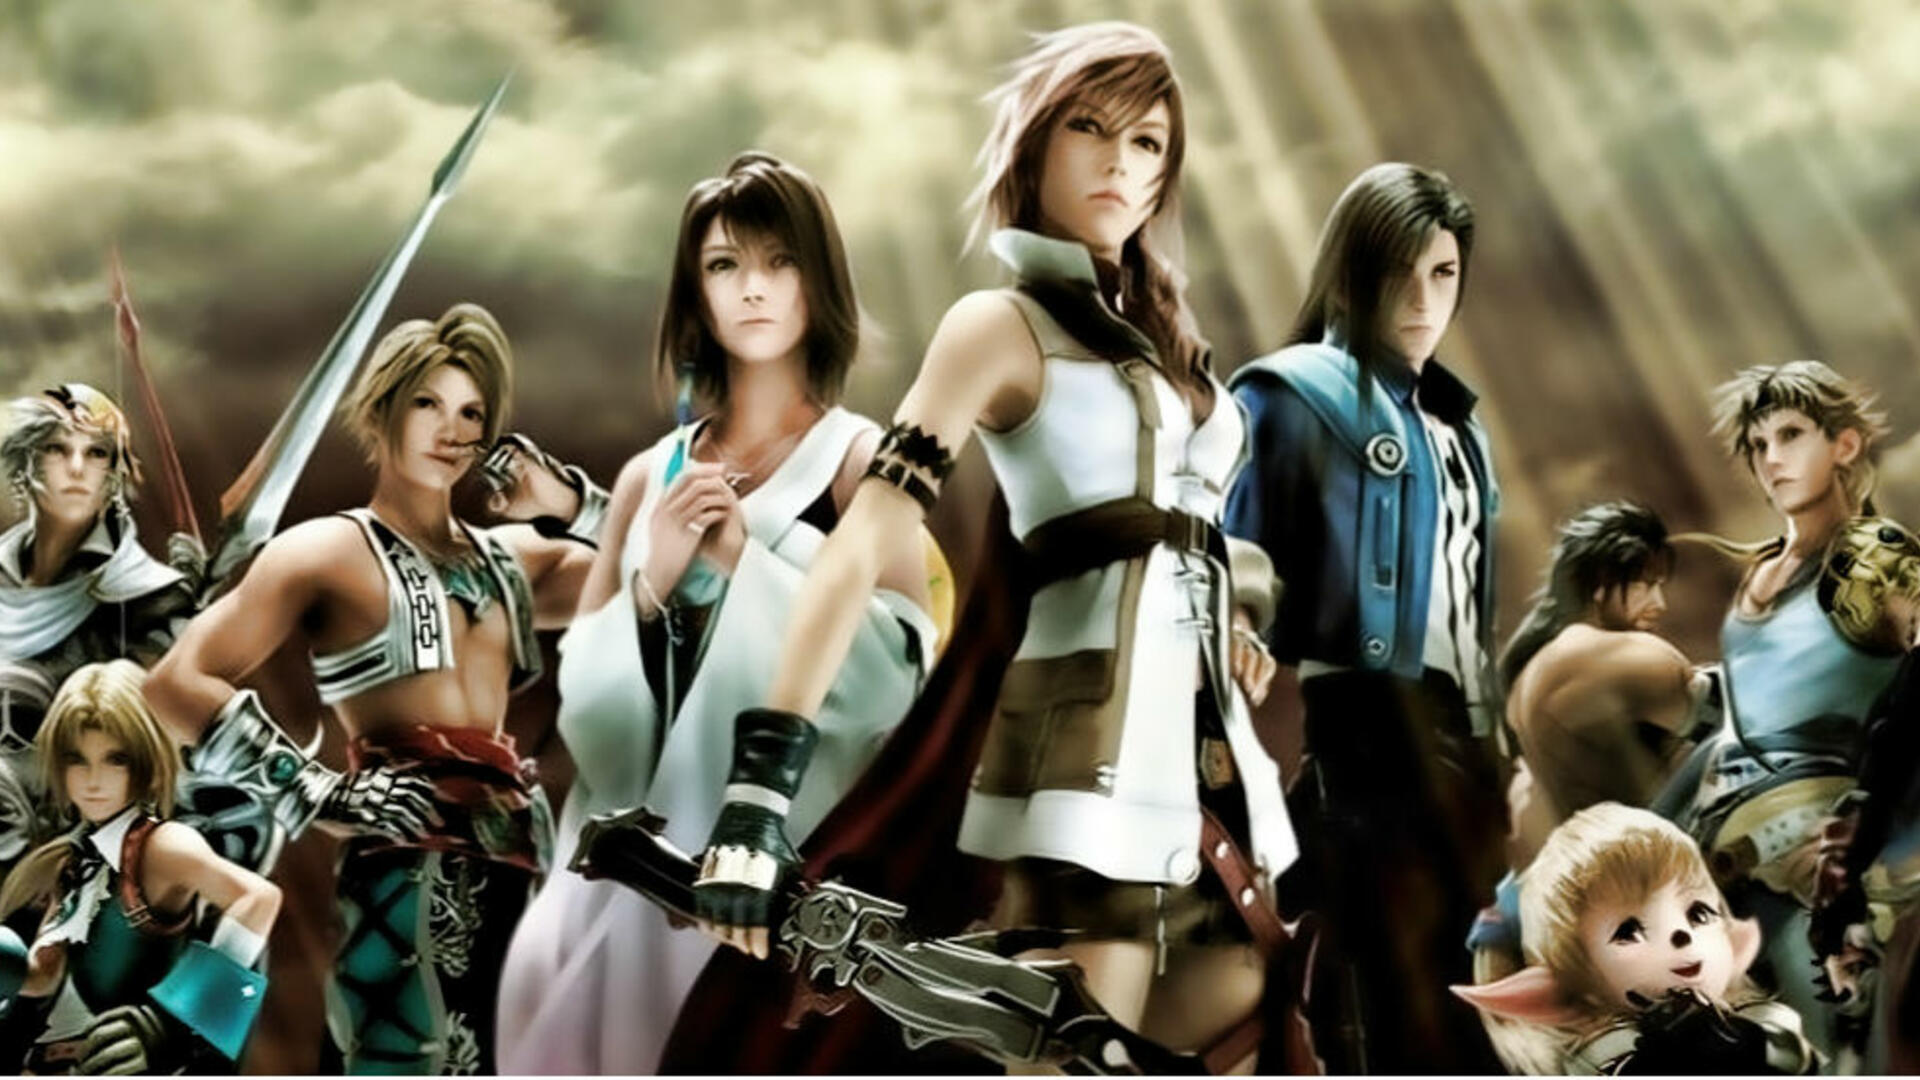 Who Would You Put in Charge of Final Fantasy?